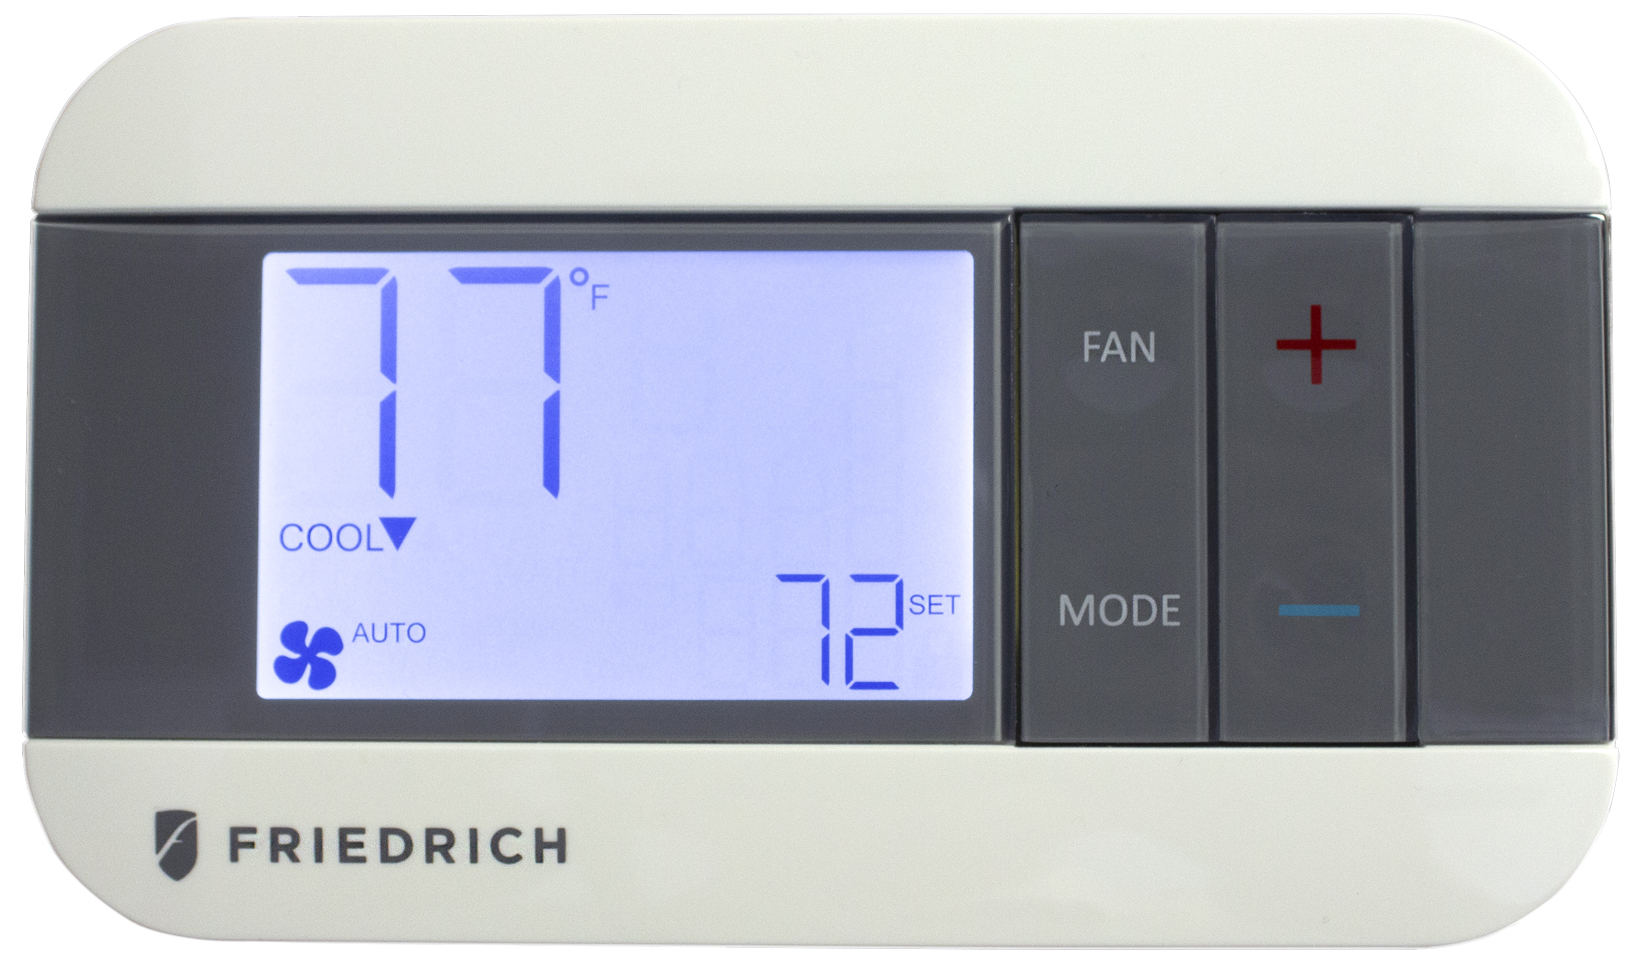 Friedrich RT7P Digital Programmable Remote Wall Thermostat